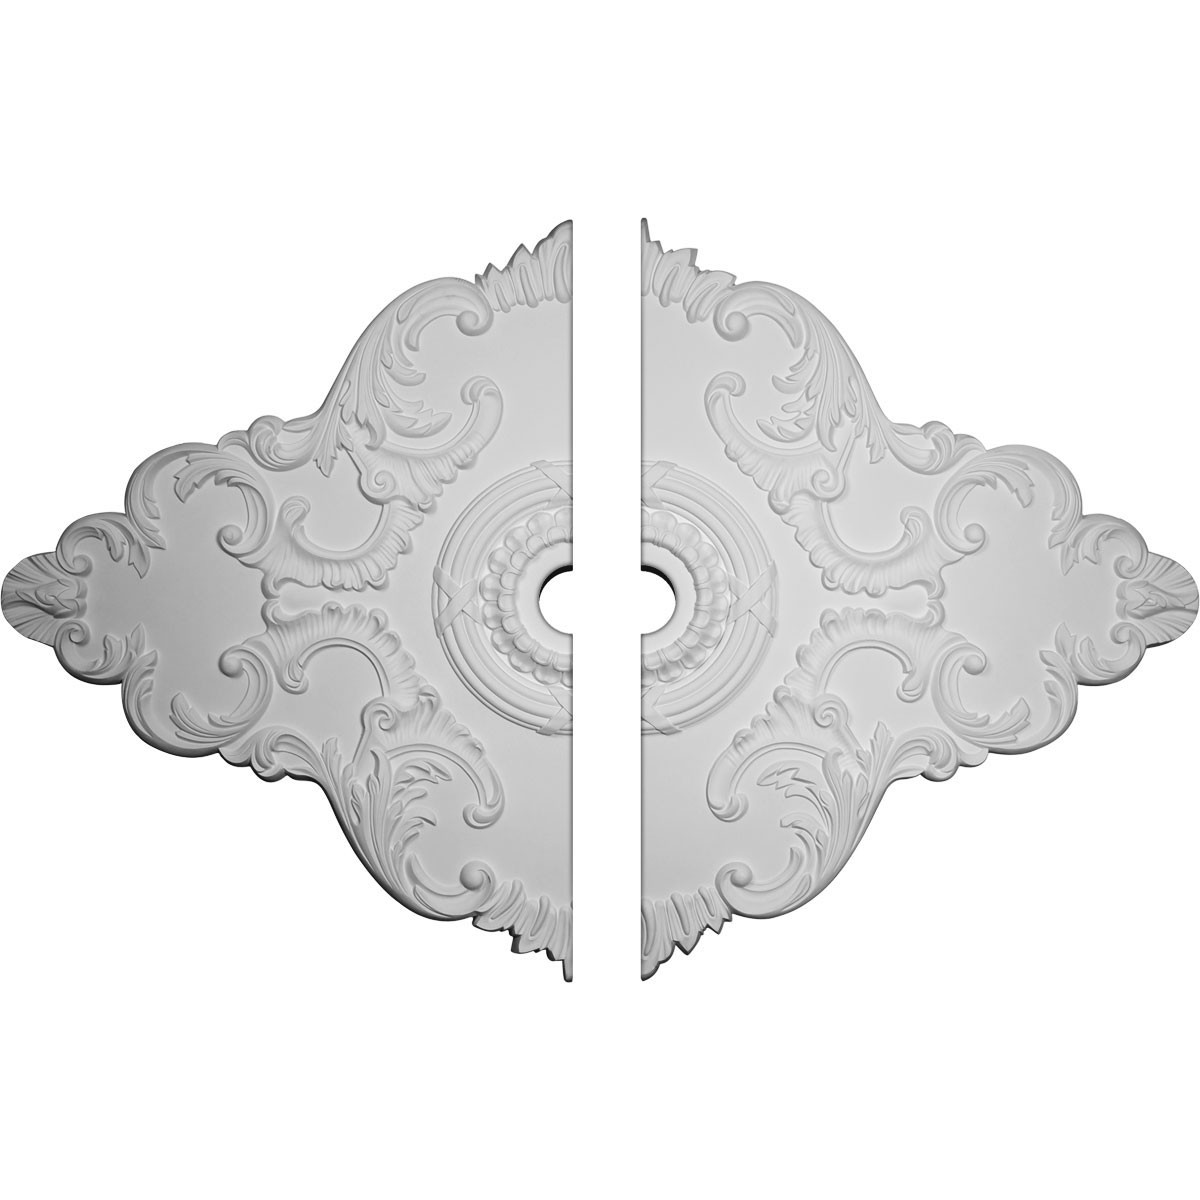 """EM-CM67PE2-06000 - 67 1/8""""W x 48 5/8""""H x 6""""ID x 1 7/8""""P Piedmont Ceiling Medallion, Two Piece (Fits Canopies up to 6 1/2"""")"""